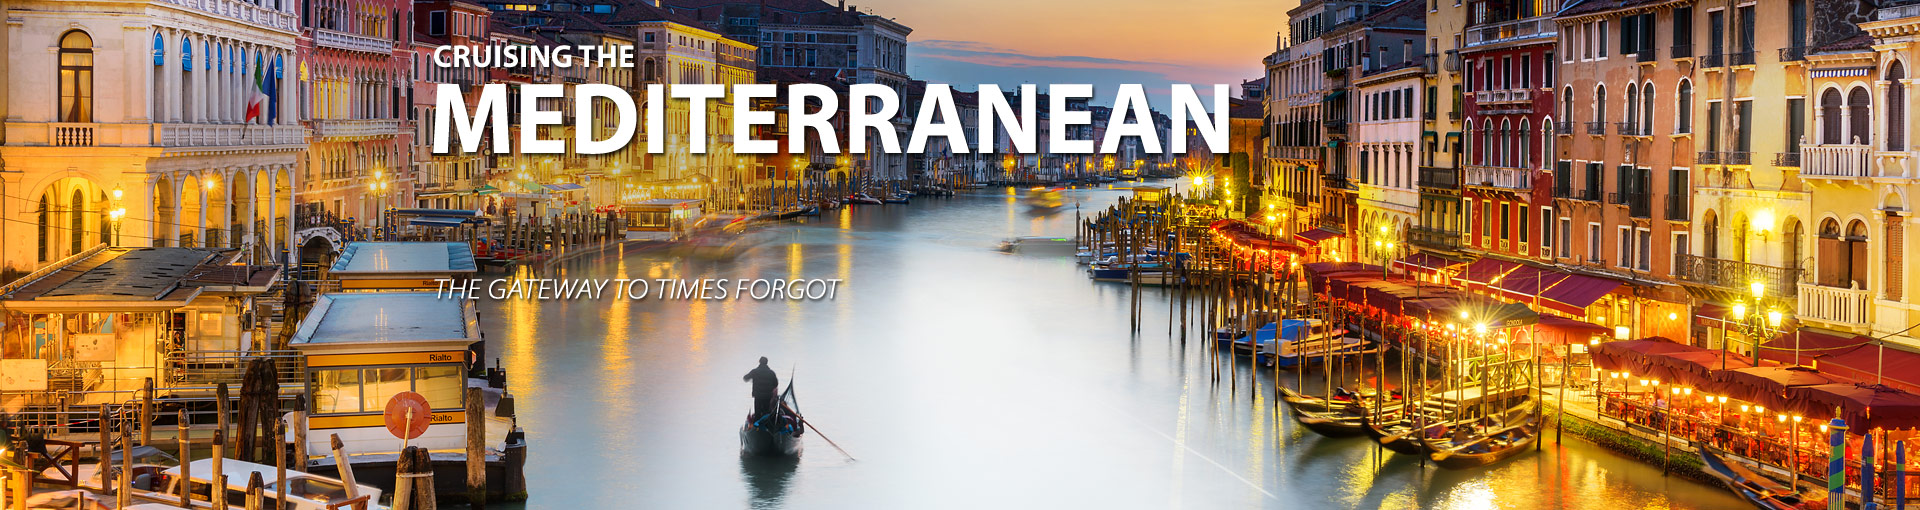 Cruise to the Mediterranean for a romantic getaway